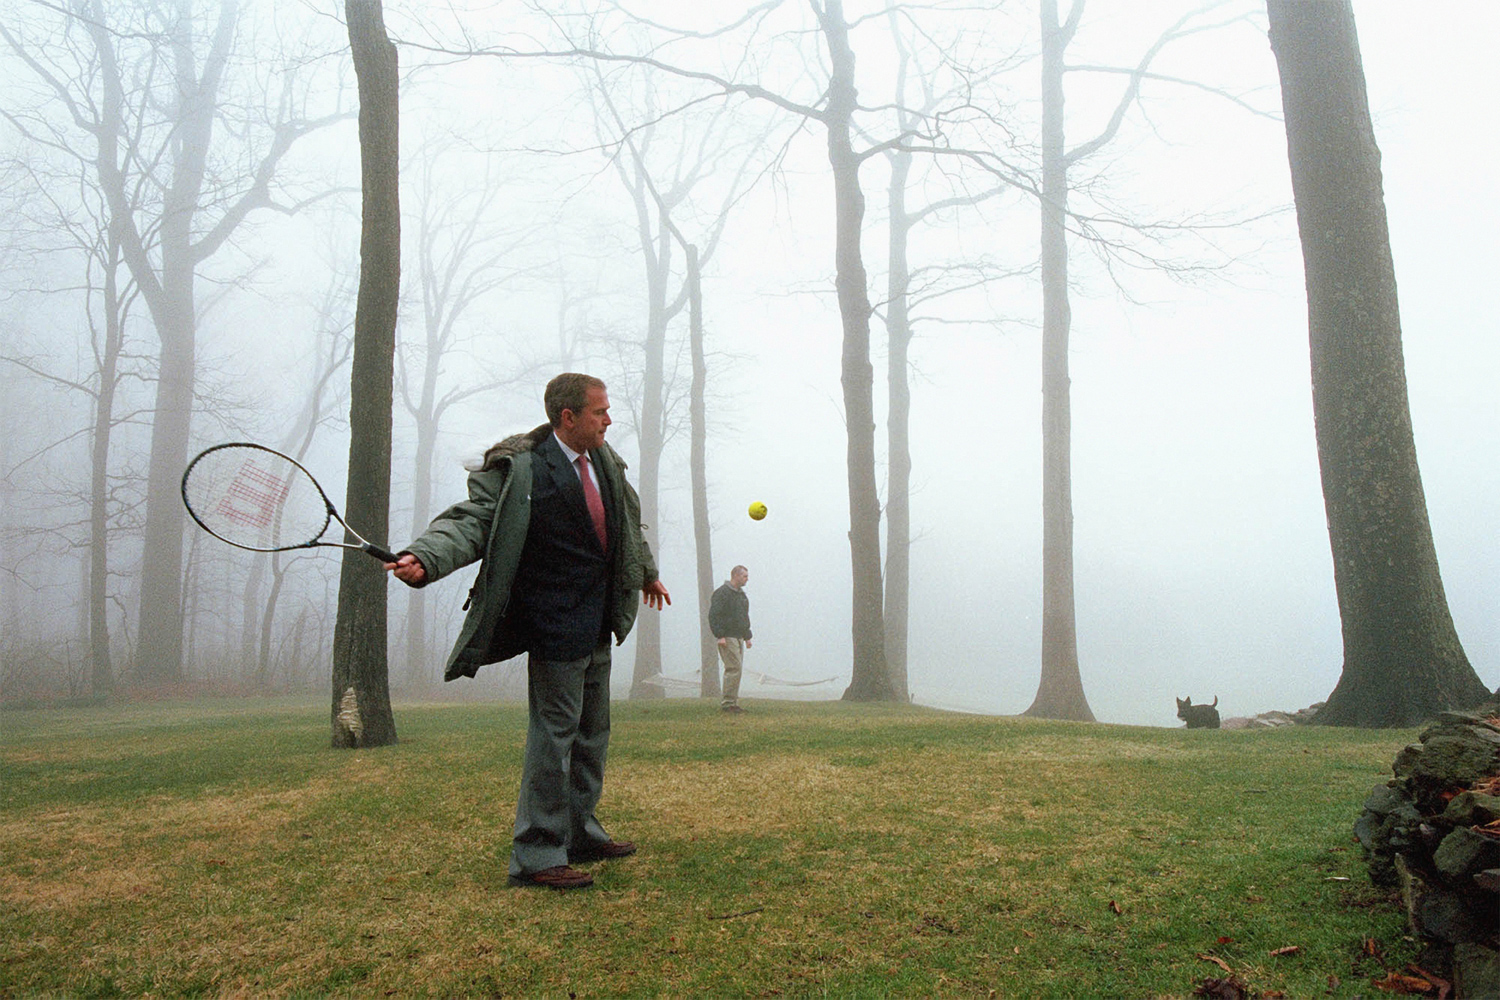 April 8, 2001. The president smacks a tennis ball towards Barney, his Scottish Terrier, during his first visit to Camp David as president.